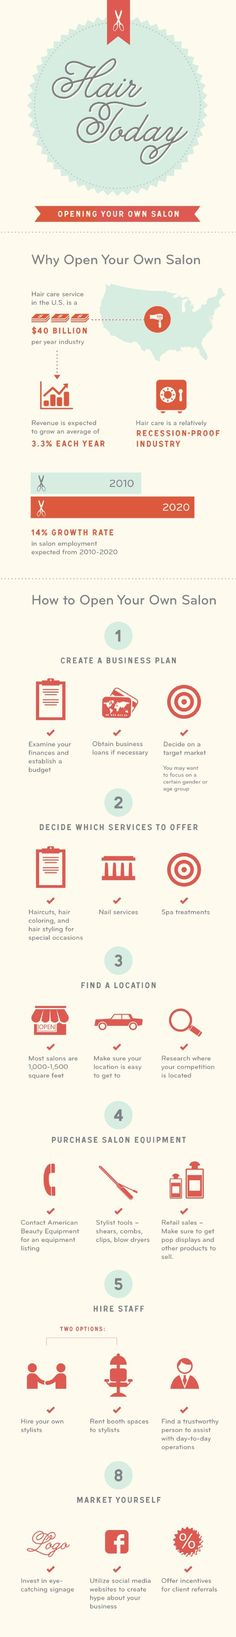 Interesting info about why you should open your own salon. Let us know what you think. #salons #business #owners